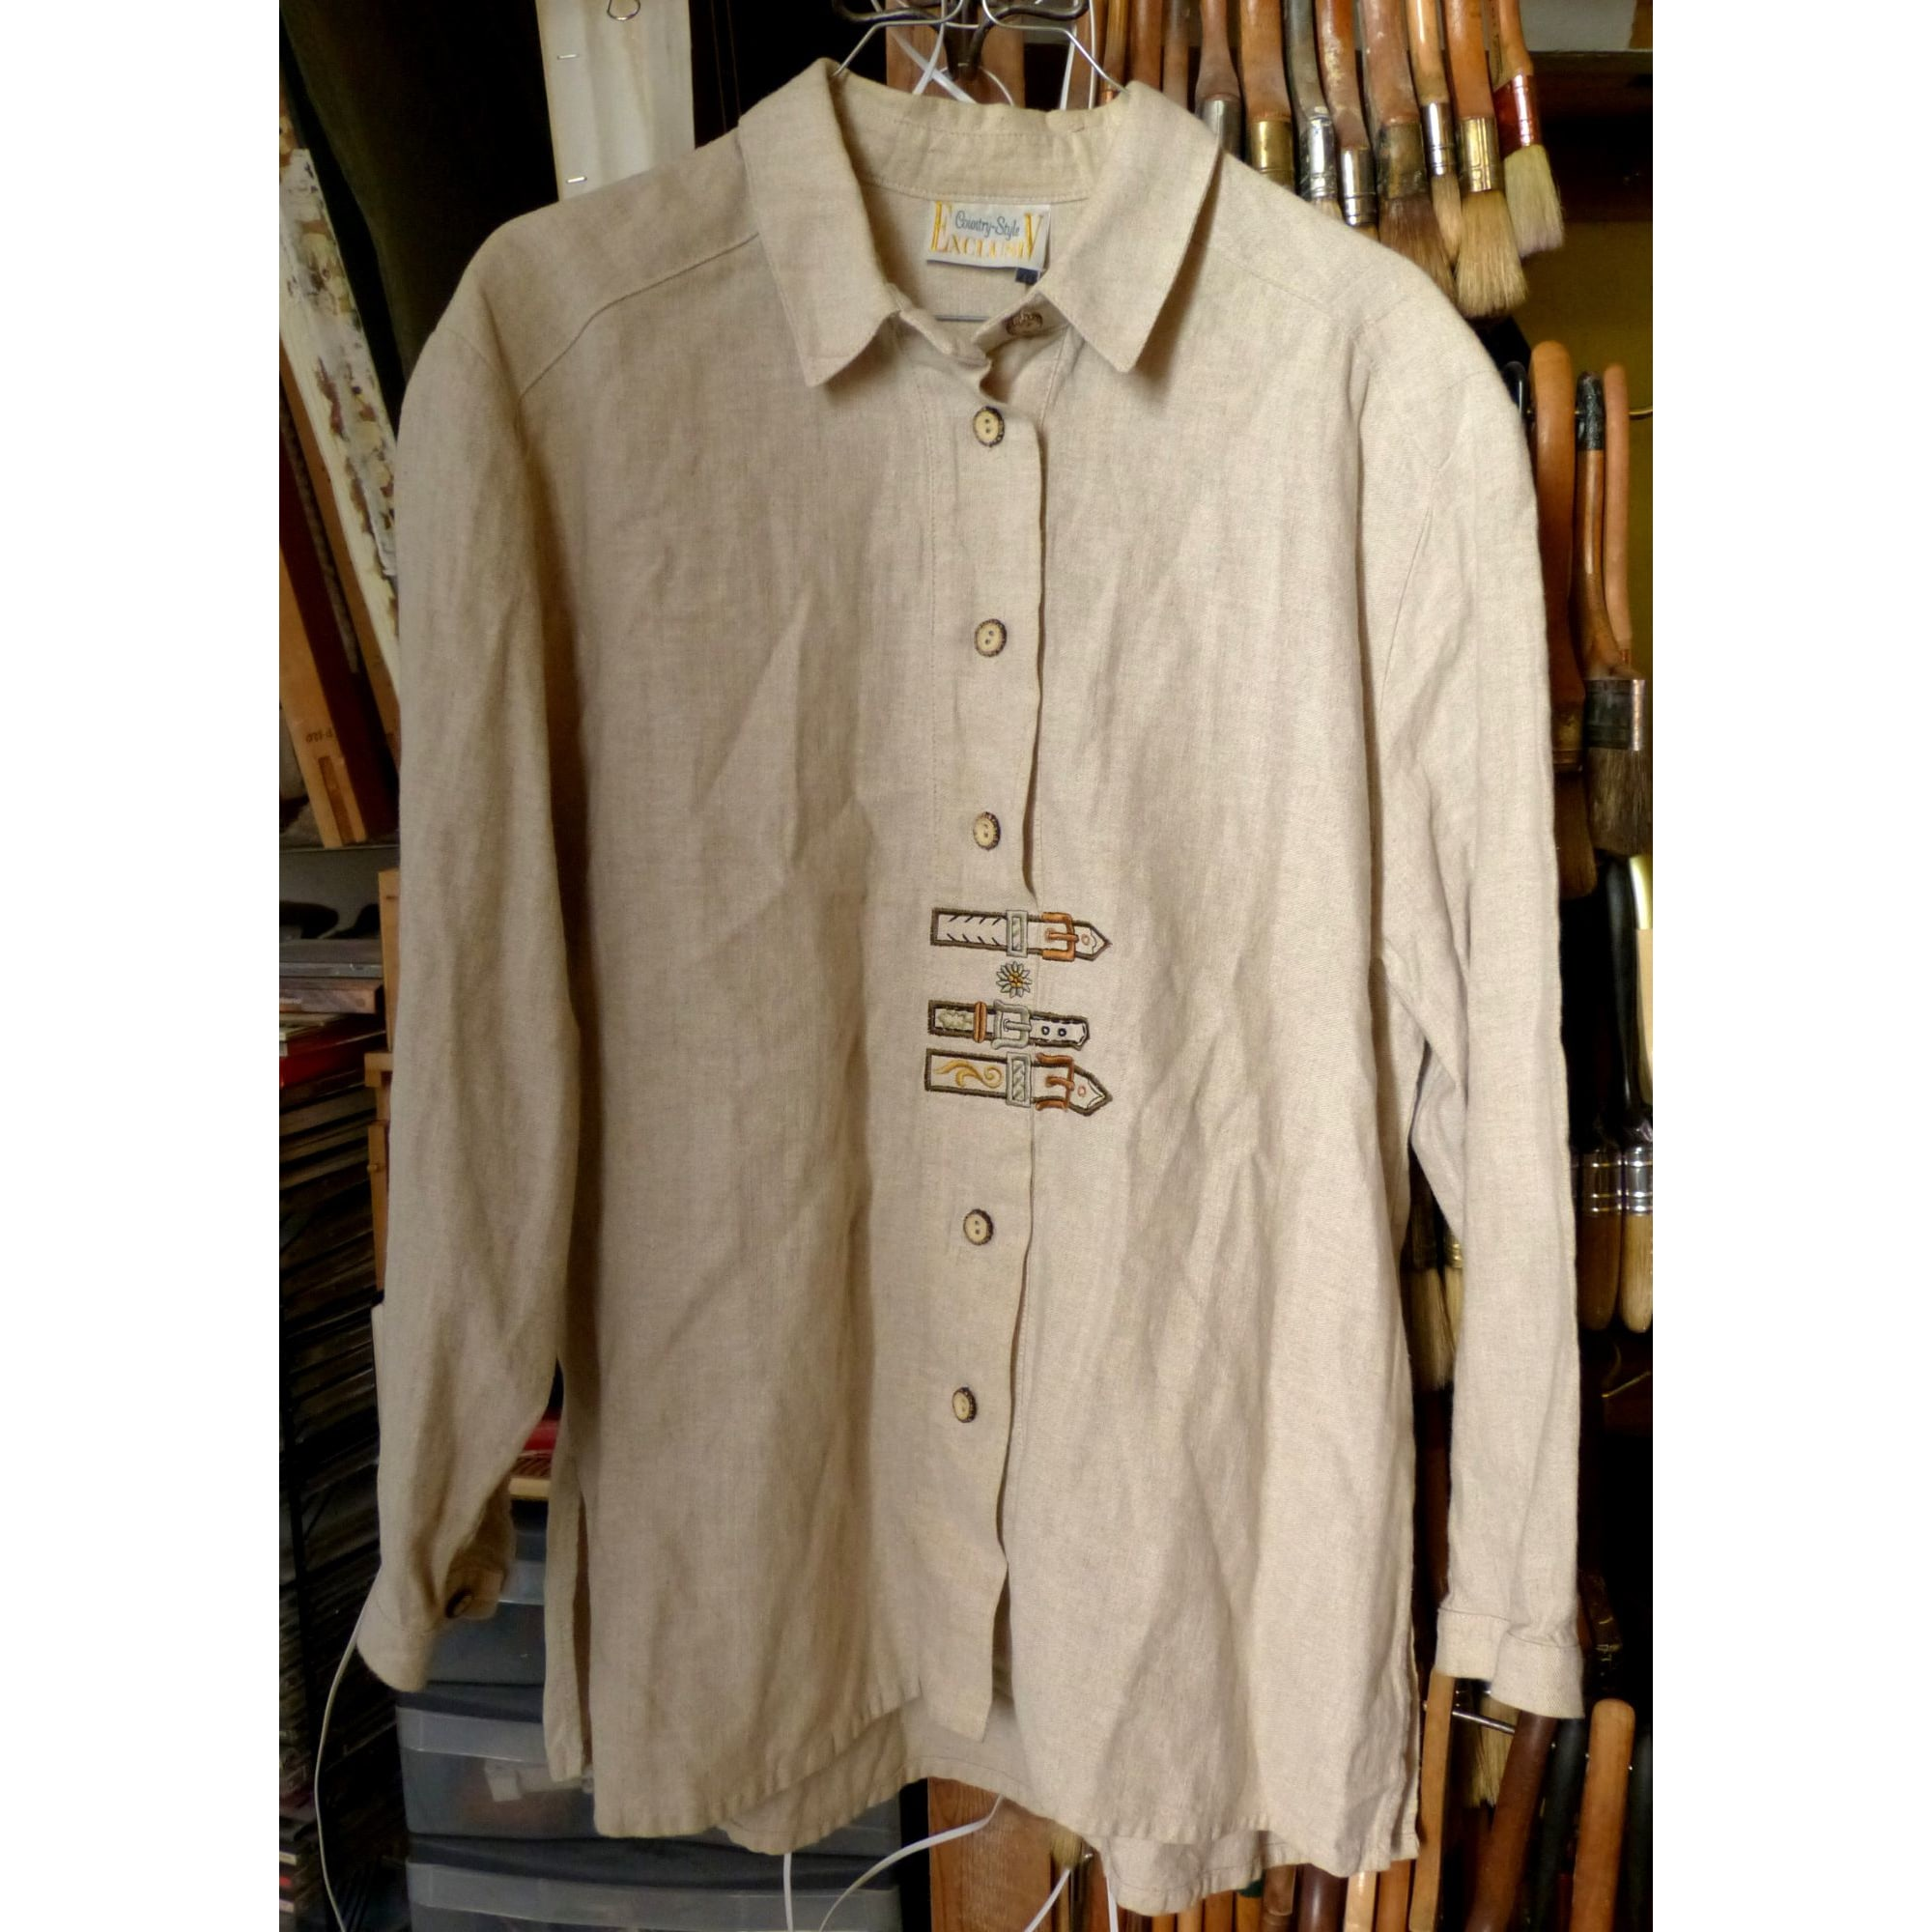 Blouse COUNTRY STYLE EXCLUSIV Beige, camel